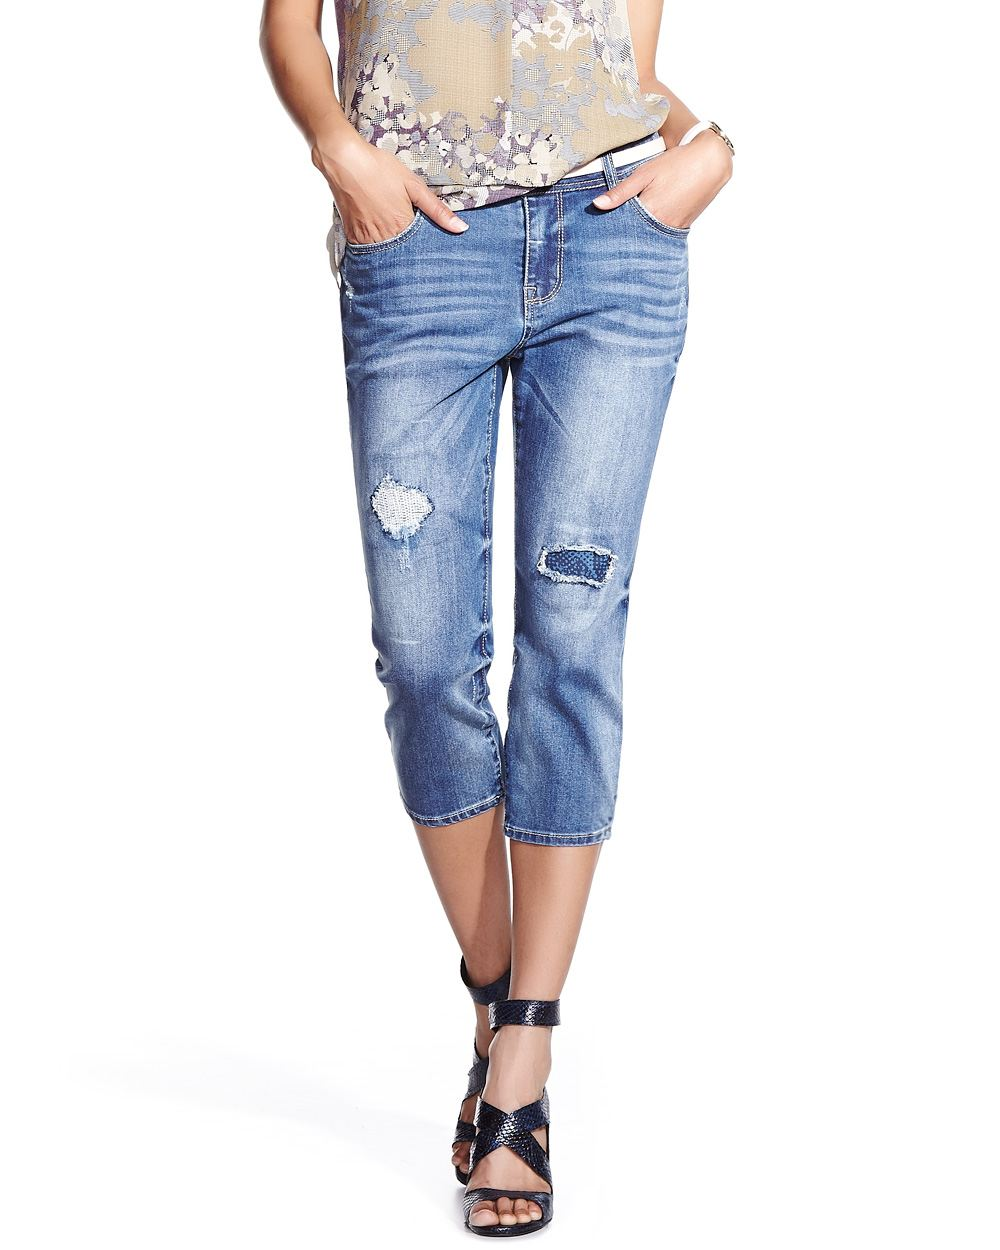 Browse pixie pants for petite women and discover more styles at skachat-clas.cf